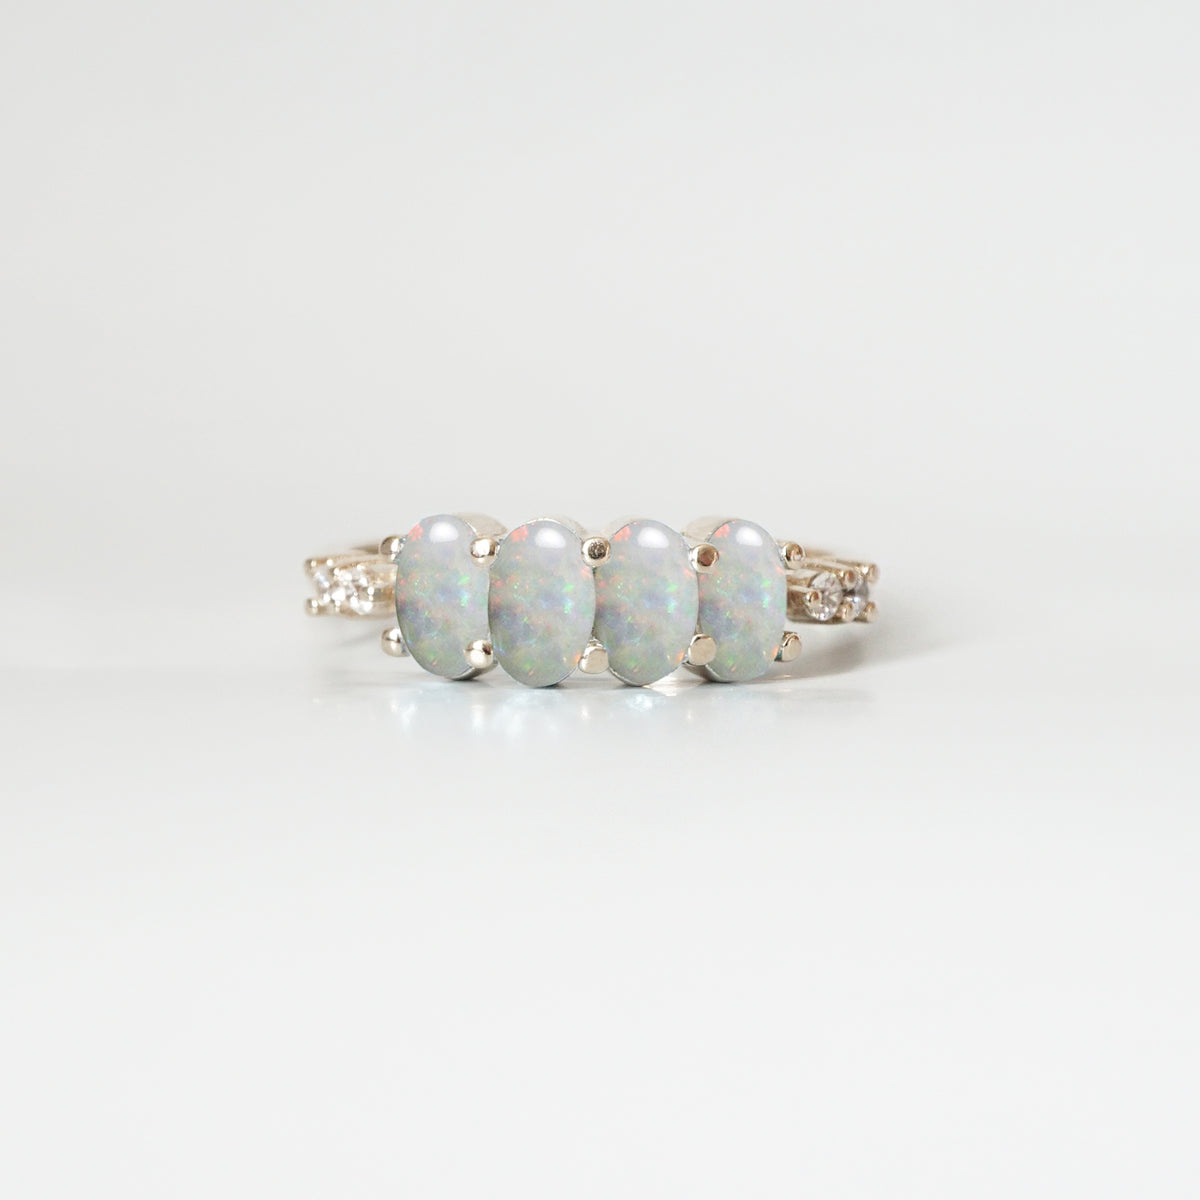 October Opal Ring - Tippy Taste Jewelry